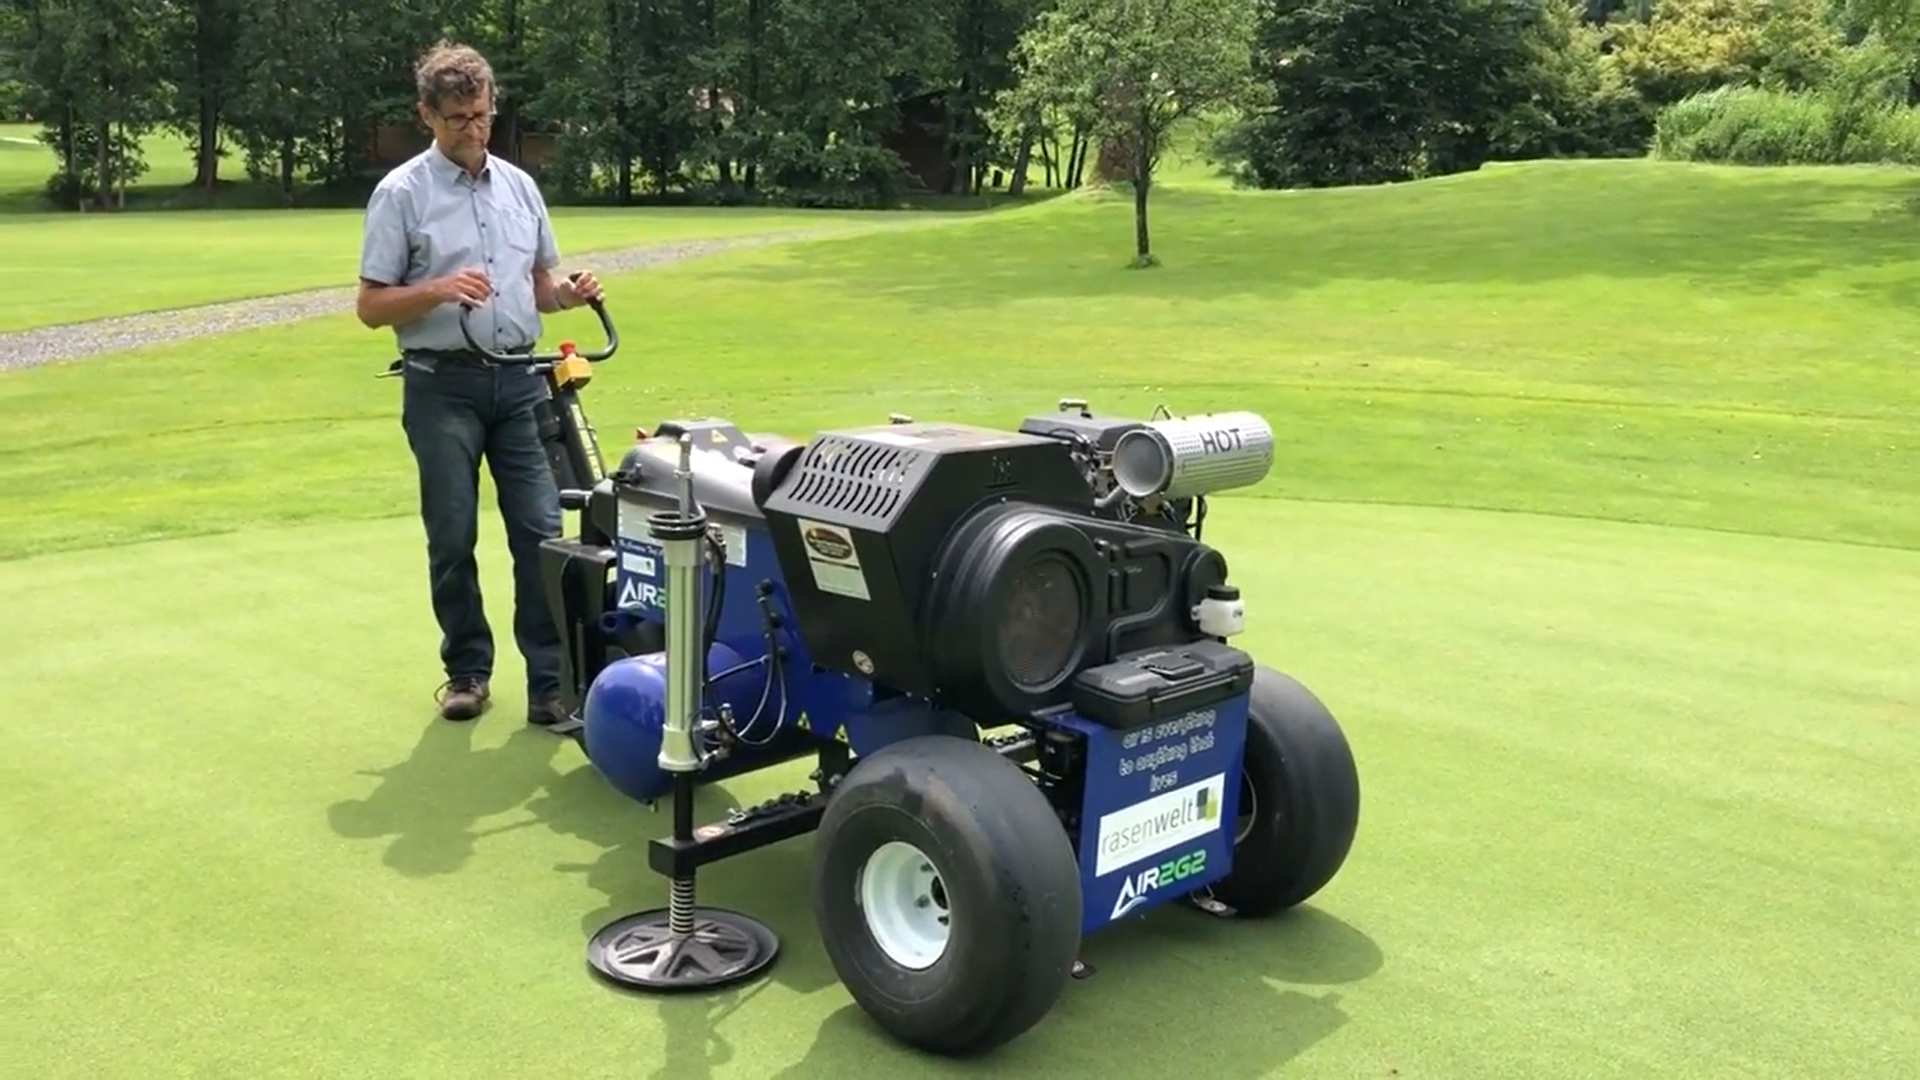 Air2g2inaction